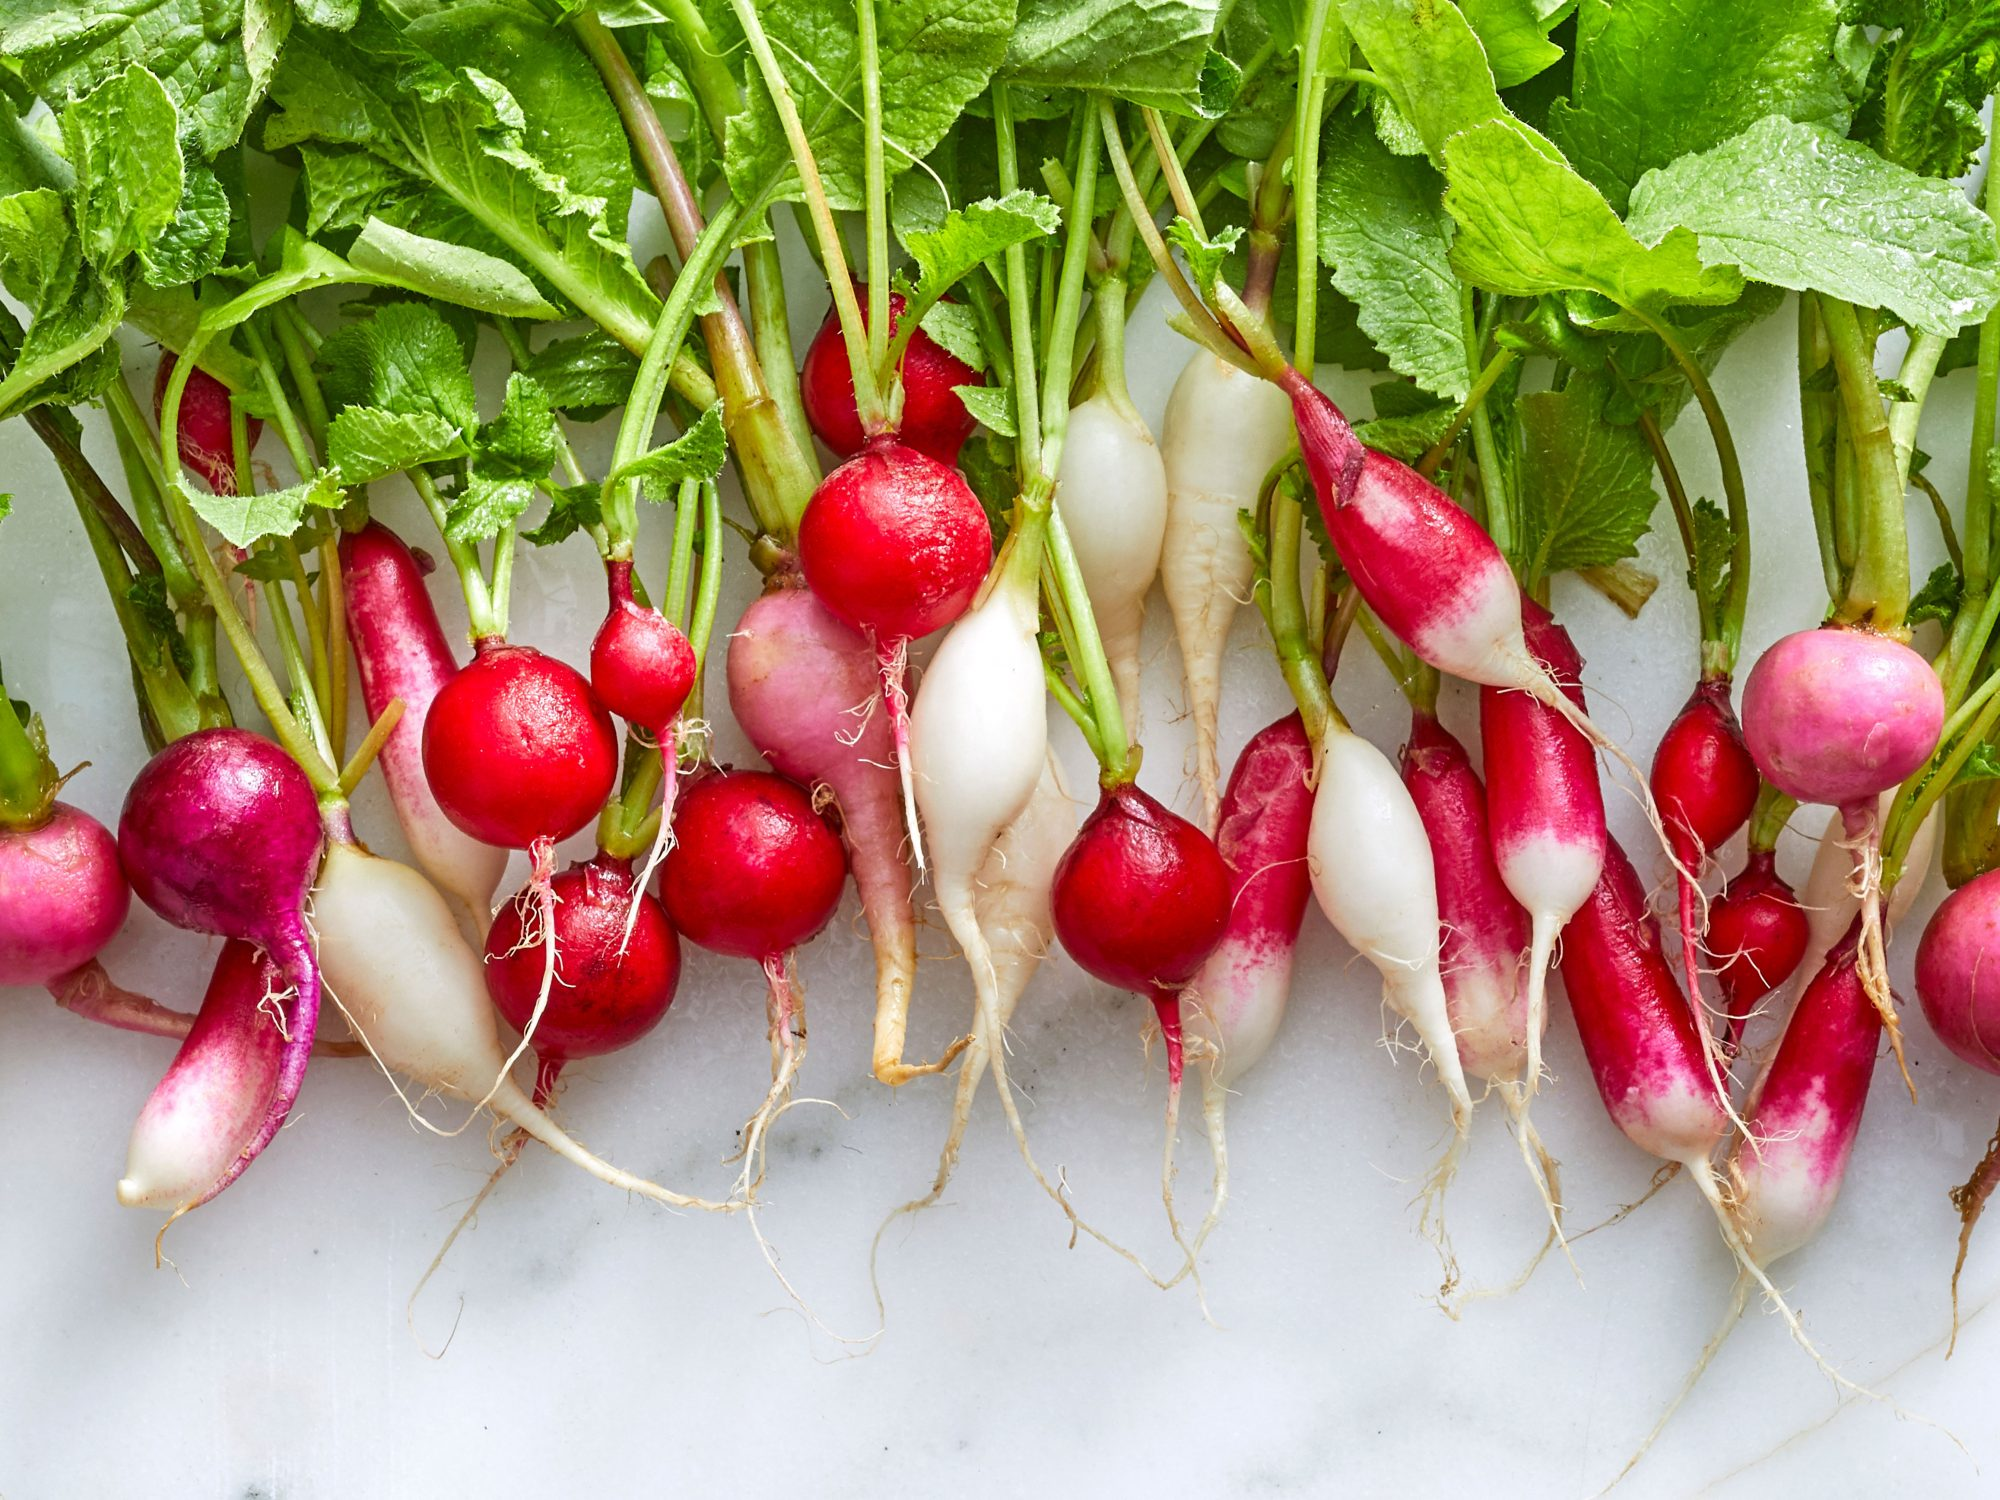 Grouping of Different Varieties of Radishes